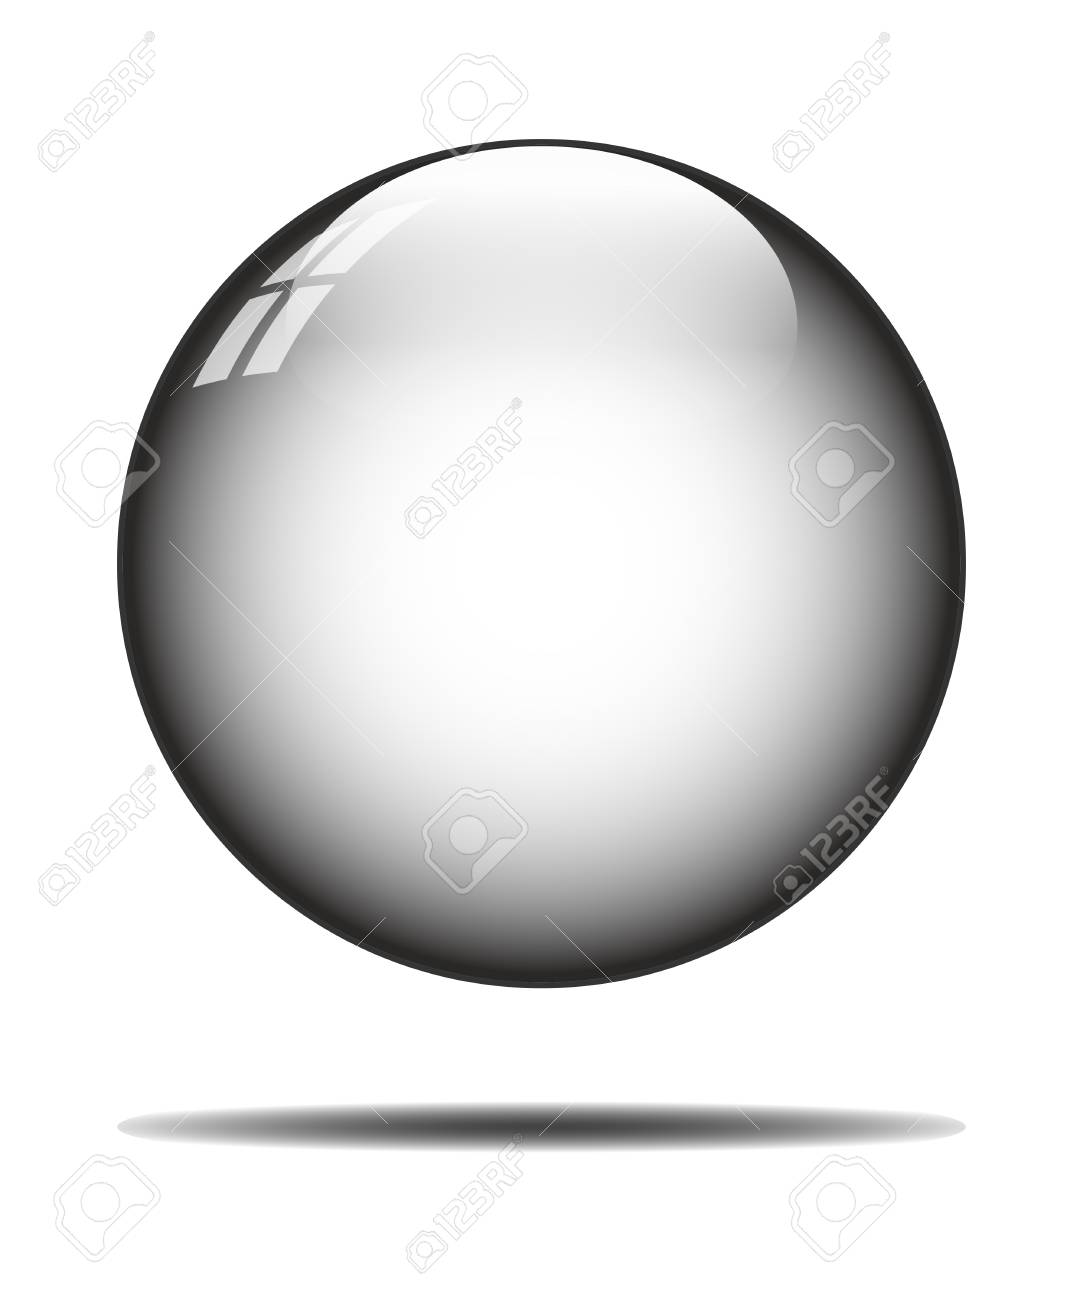 isolated crystal ball on white background - 109431312